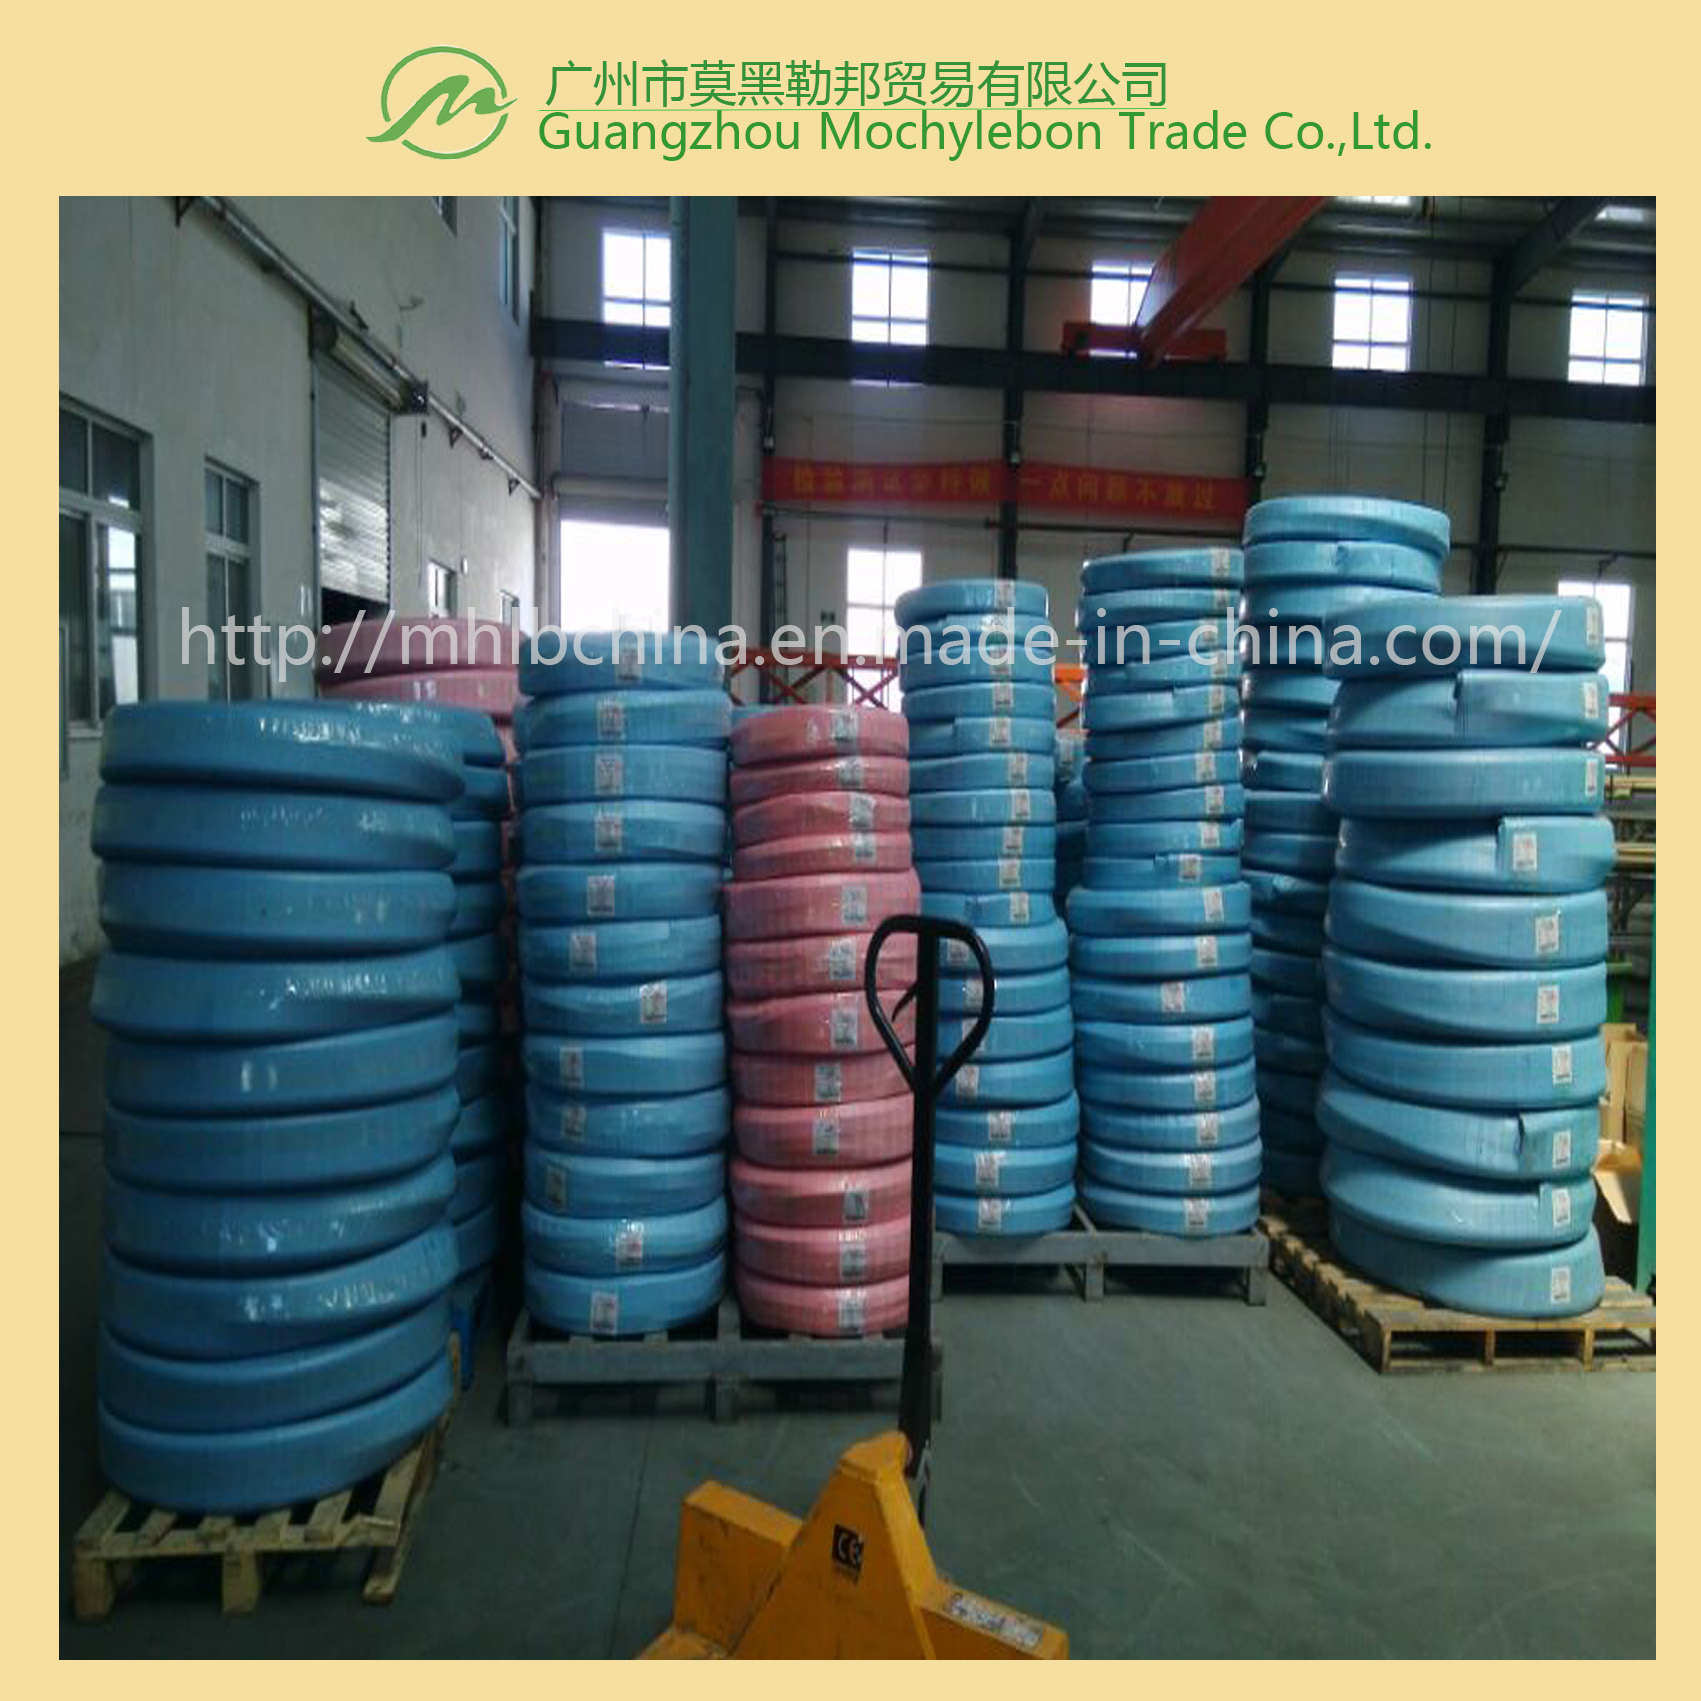 Steel Wire Braided Reinforced Rubber Covered Hydraulic Hose (SAE100 R1-1/2)